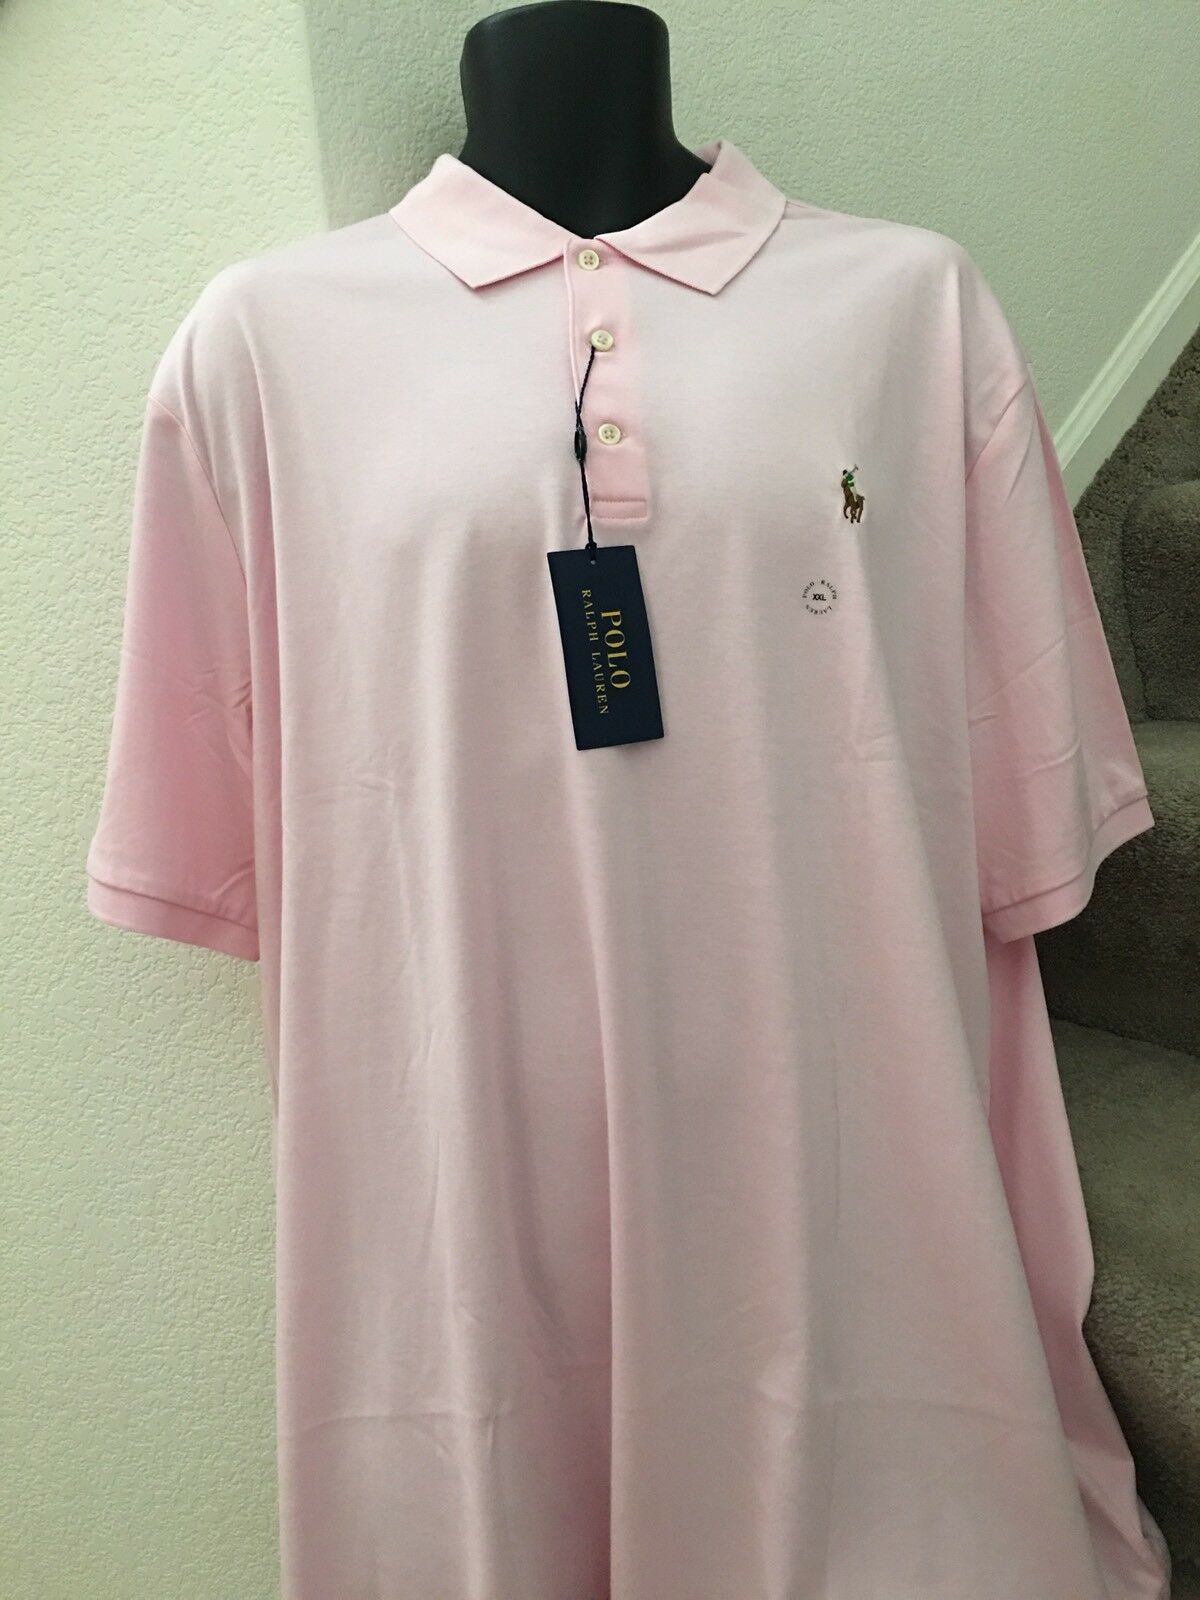 Polo Ralph Lauren Mens Classic Fit Soft Touch Cotton Polo Shirt Size XXL Pink